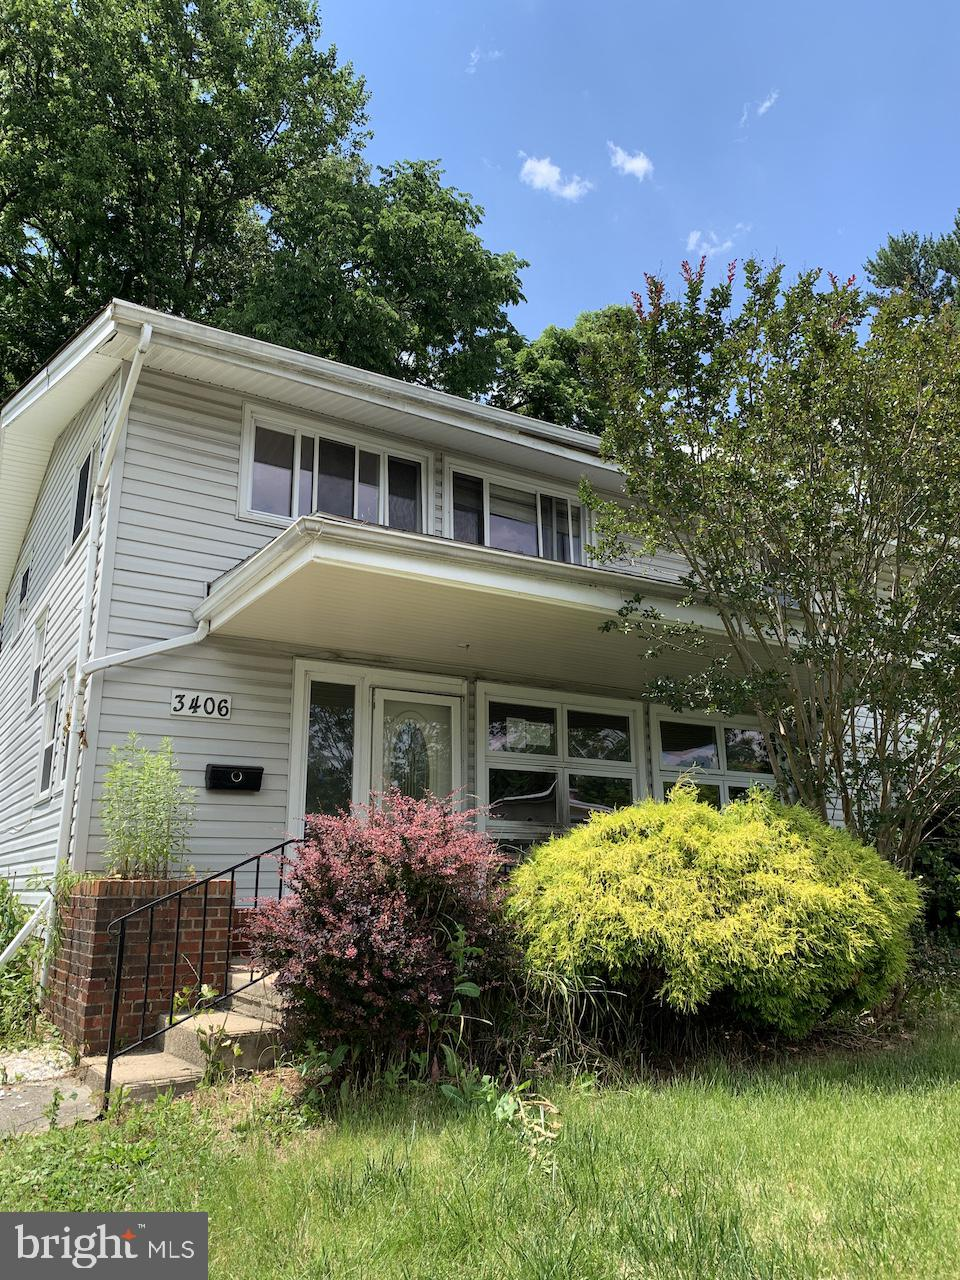 Excellent opportunity in the Robin Hills community of Gwynn Oak! Come make this home your own and ad